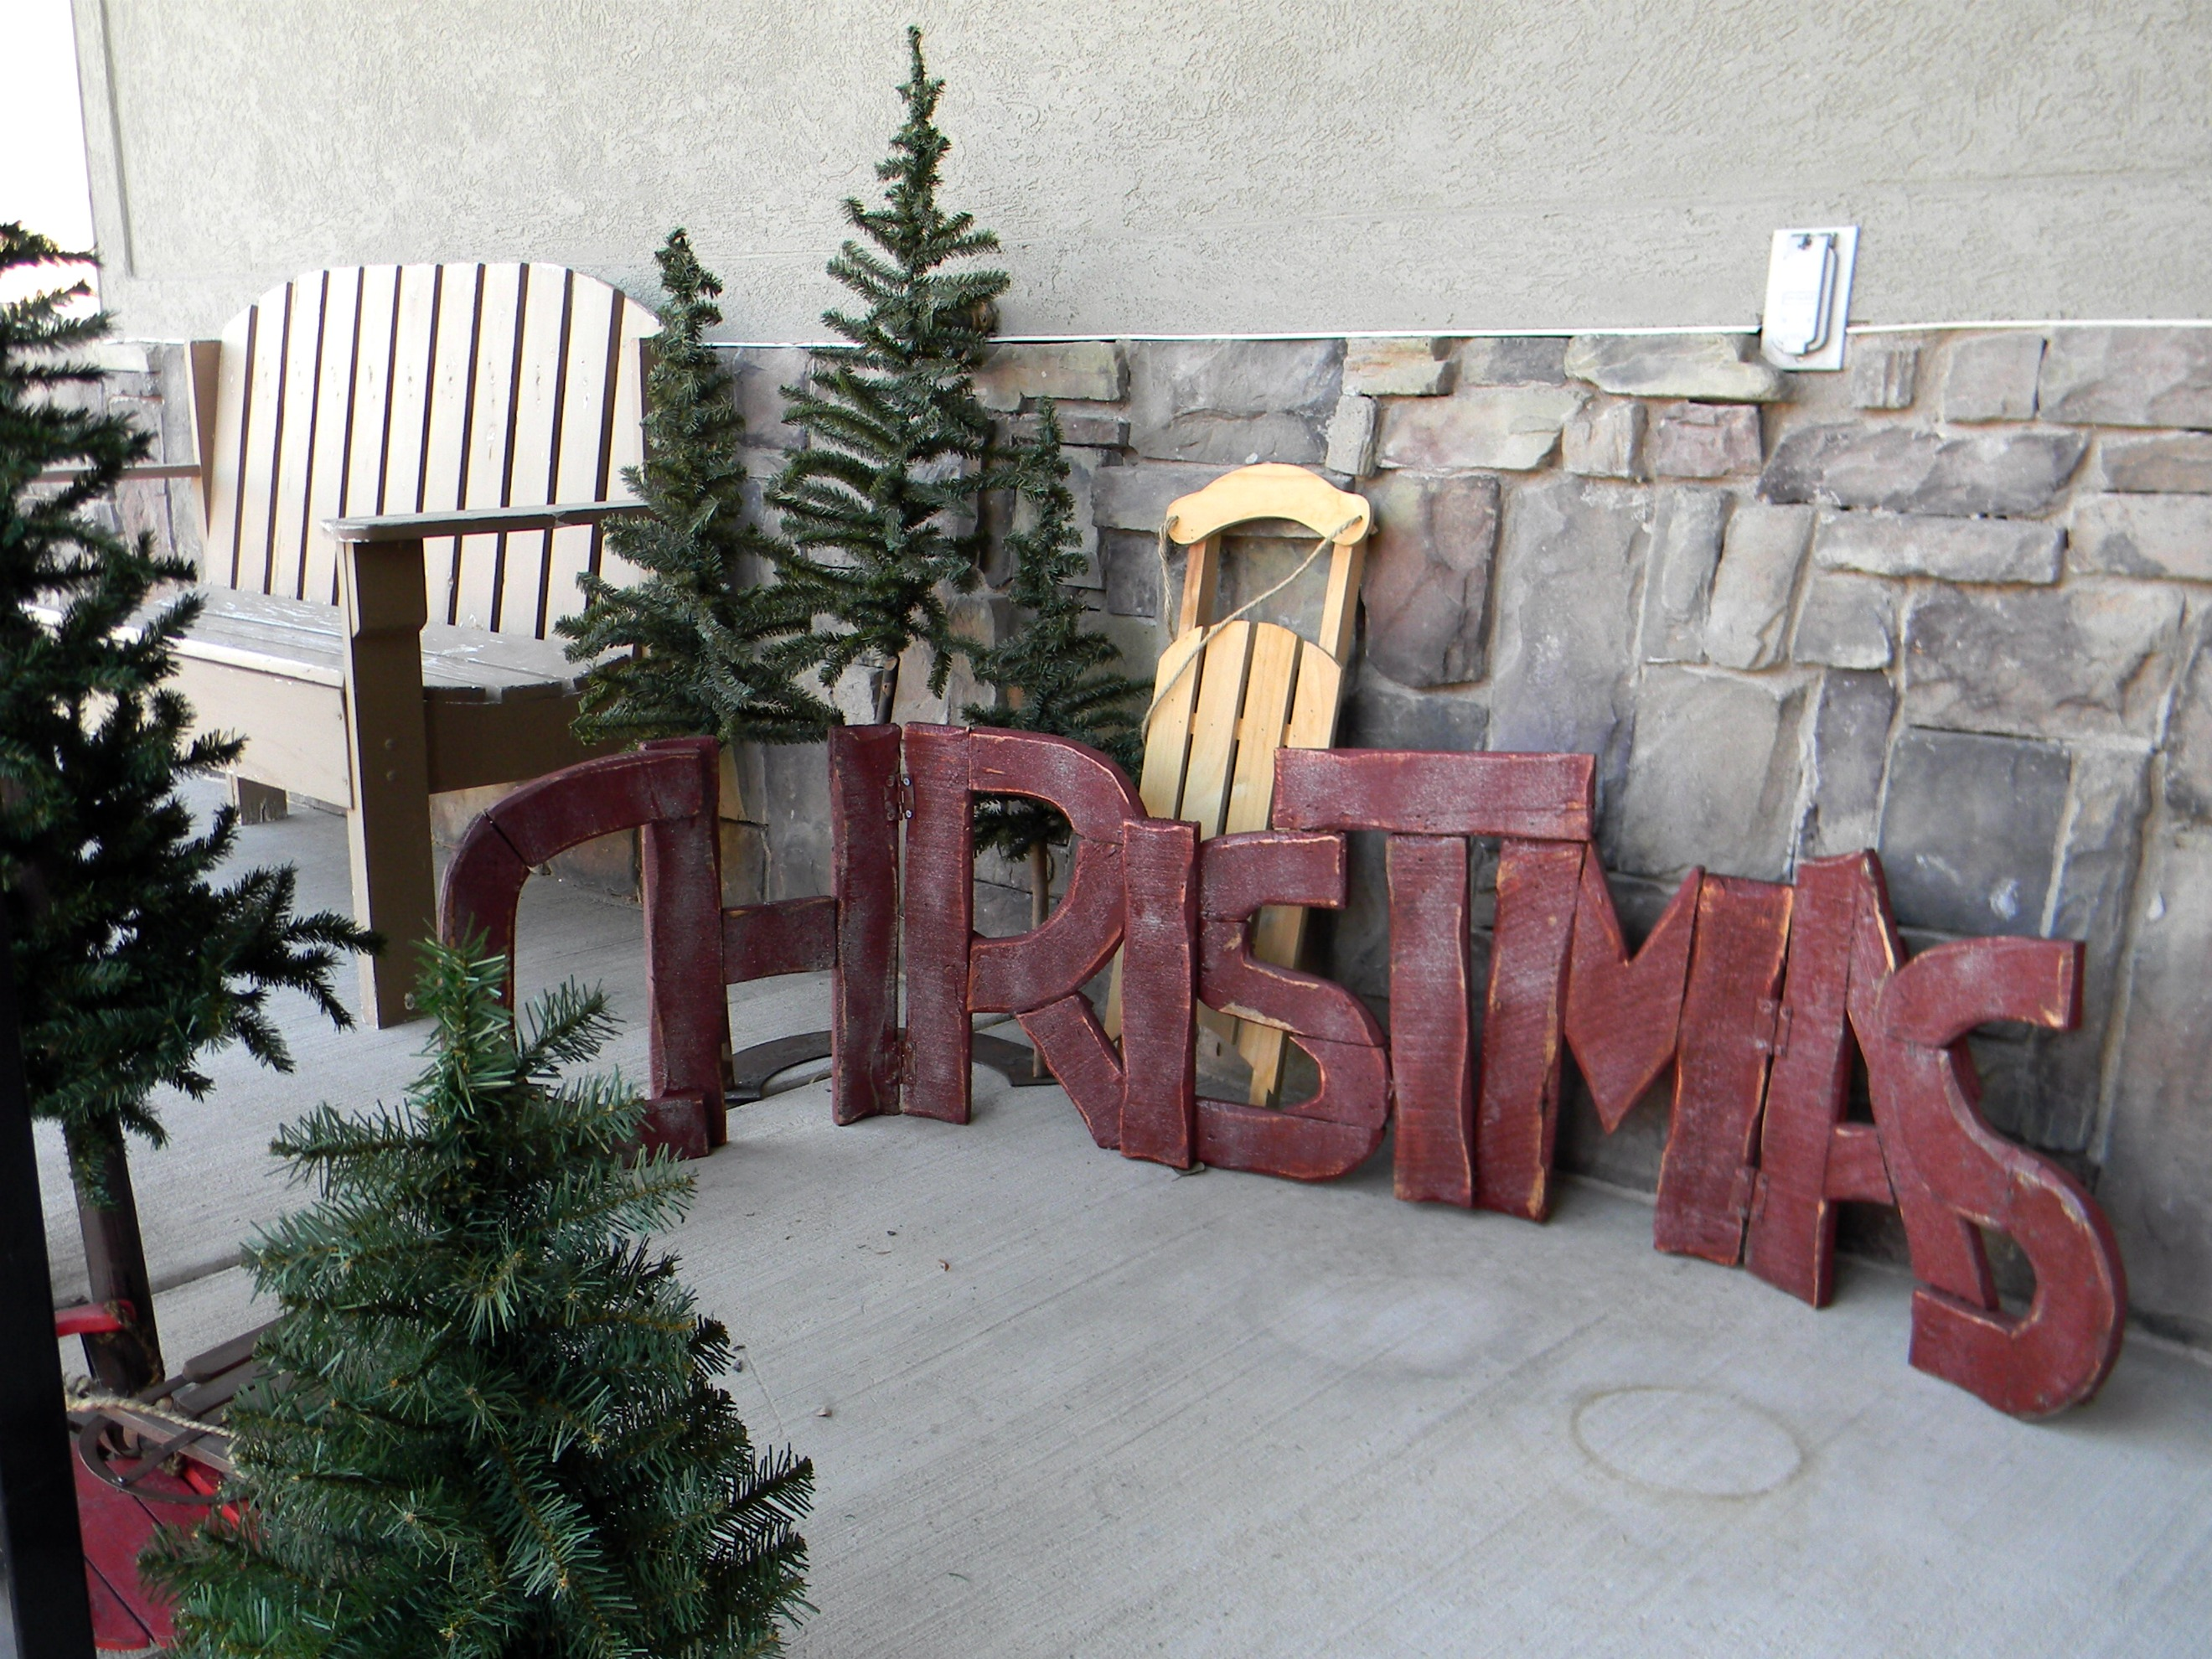 Ideas About Christmas Decorations For Porch Railings